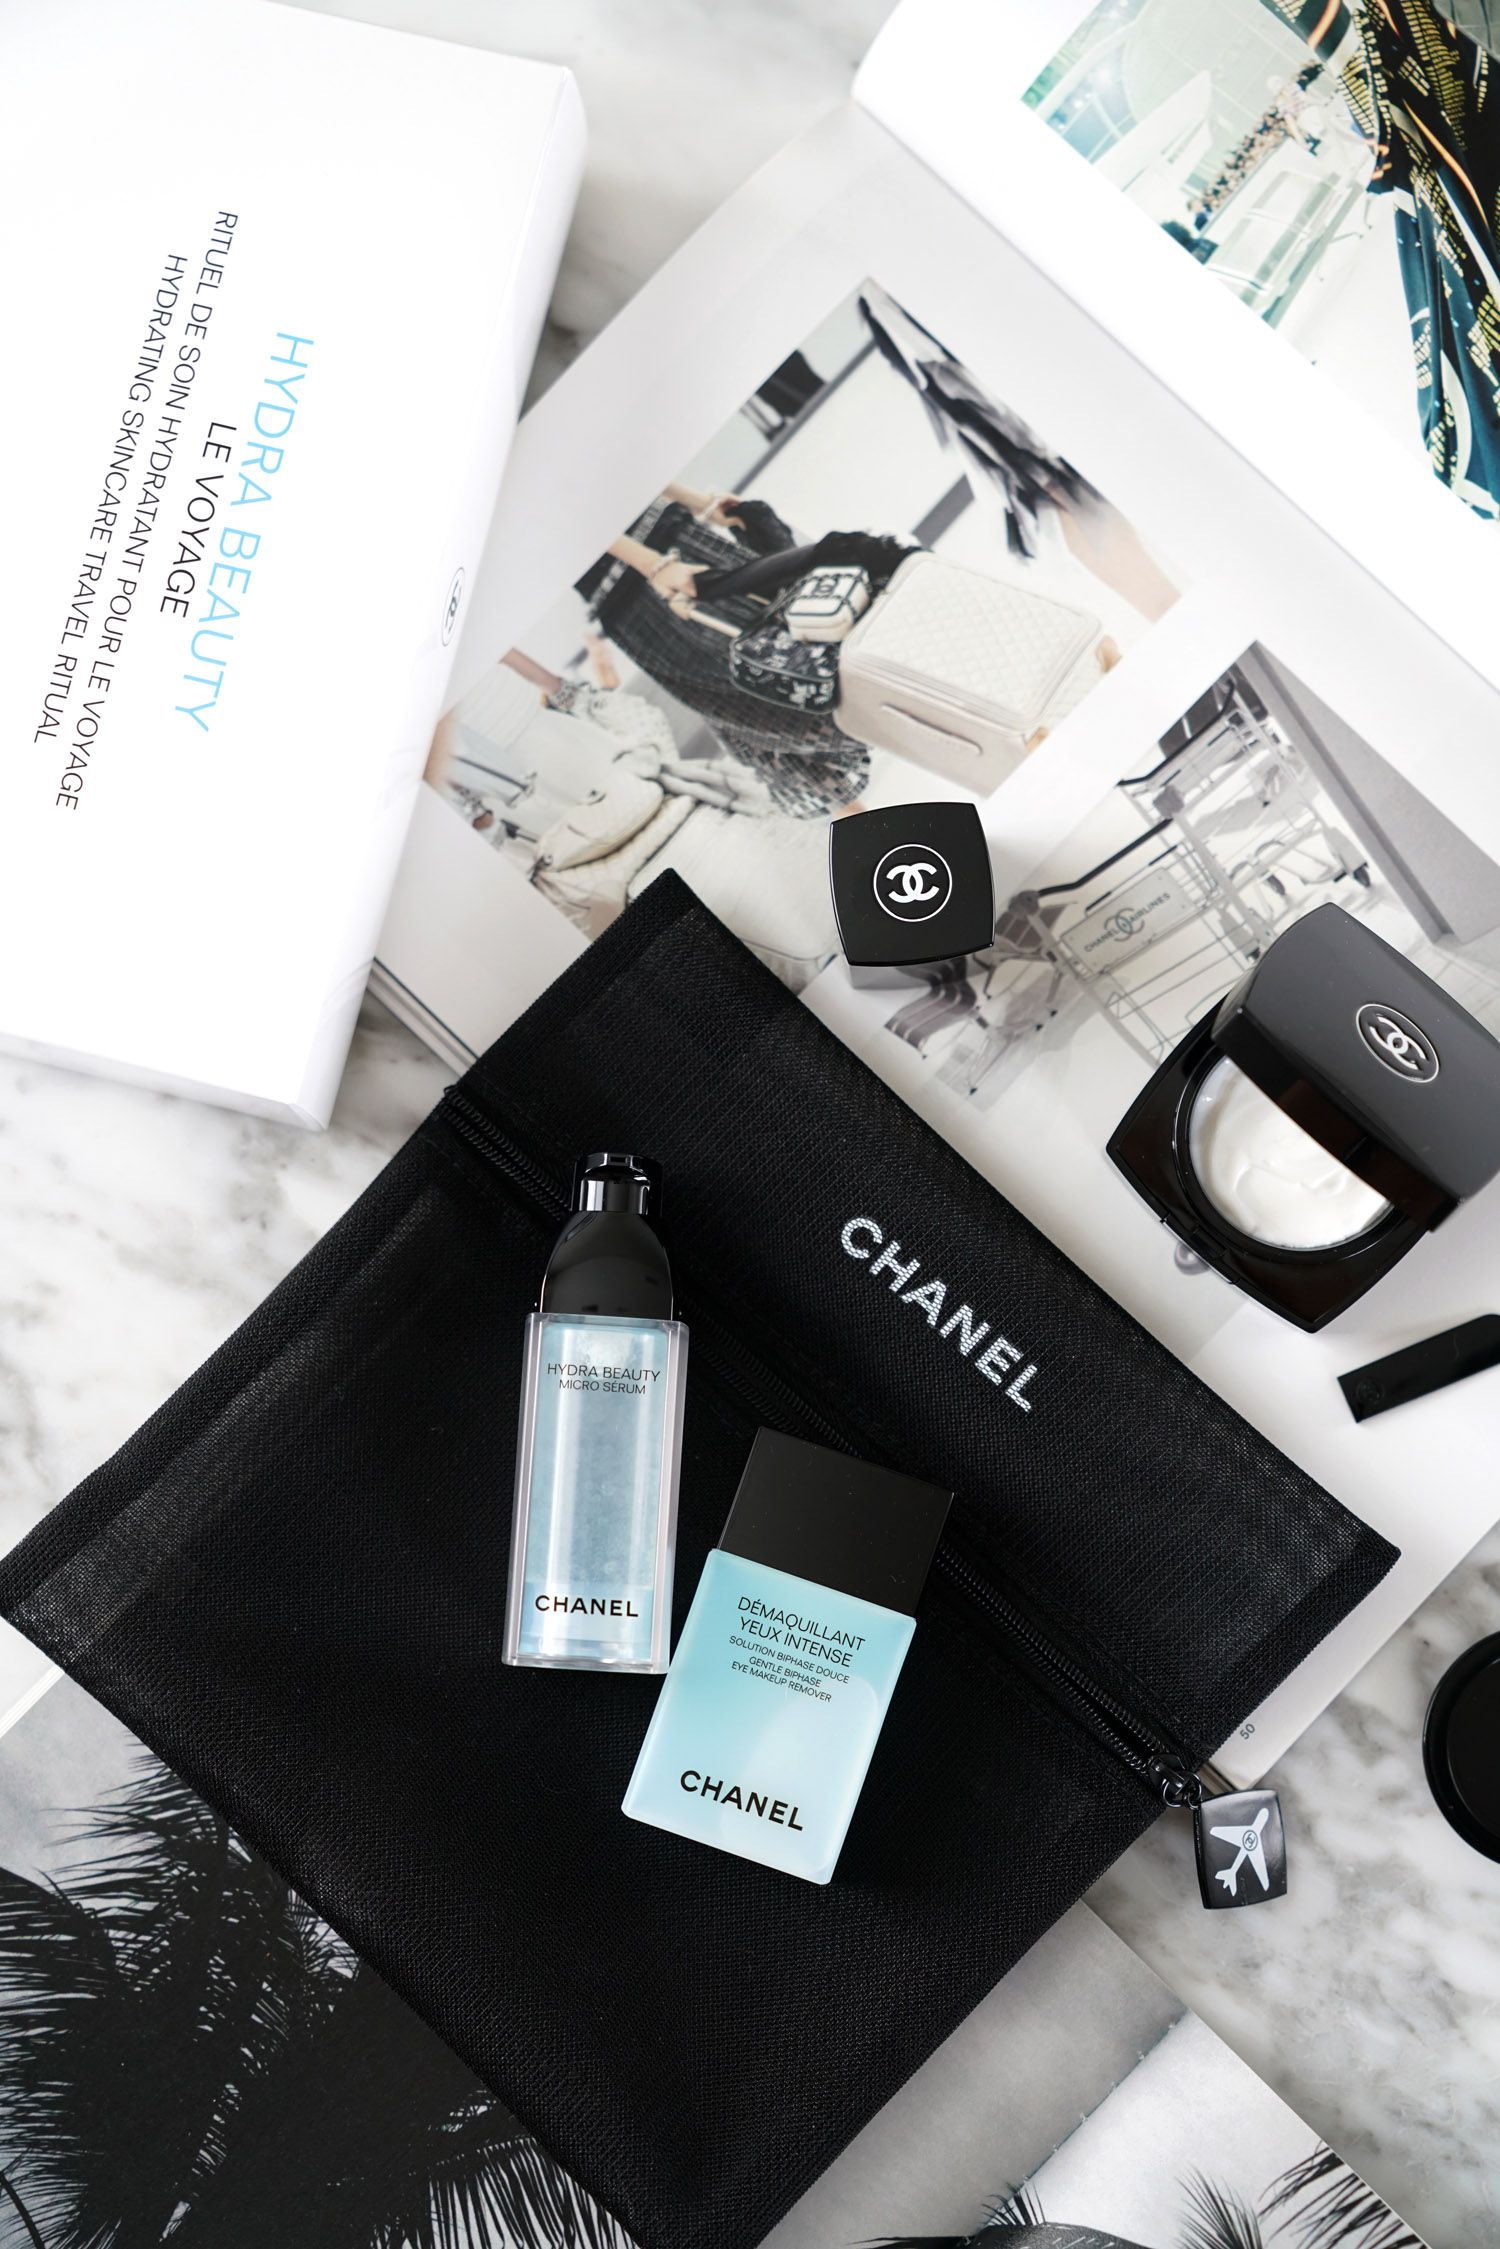 e3c5cdb943 Chanel Hydra Beauty Le Voyage Set Review | The Beauty Look Book ...